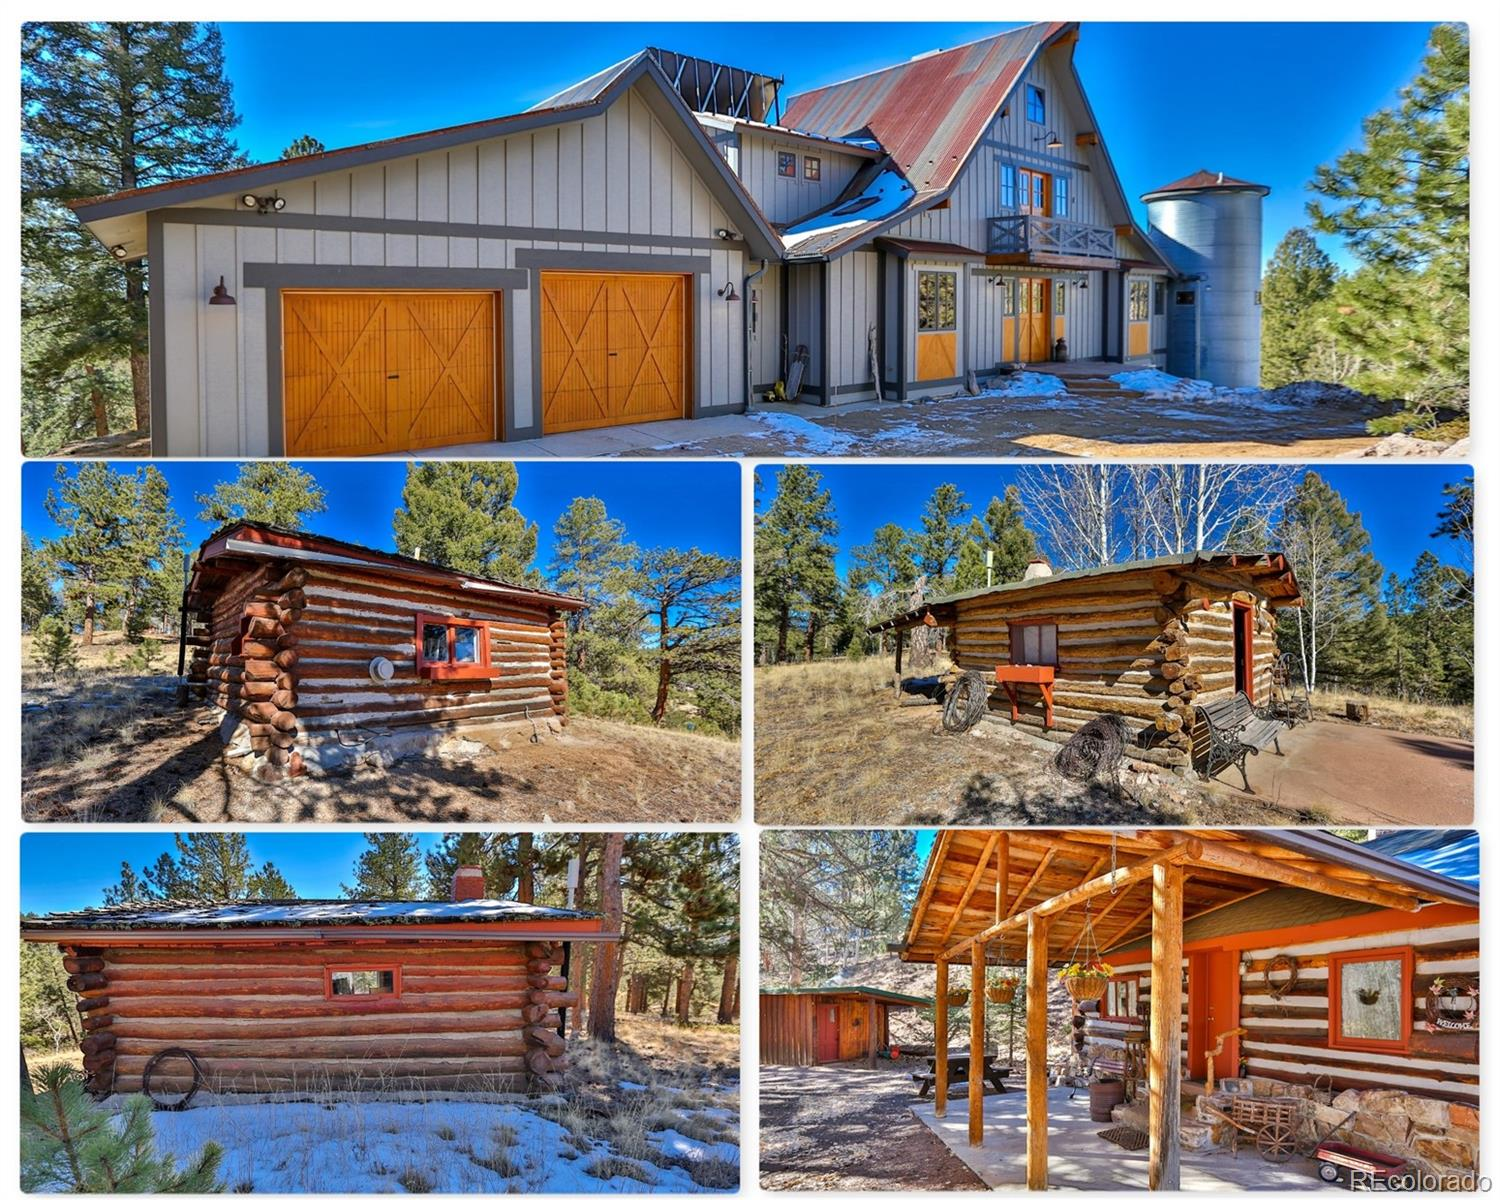 """***See the Amazing HD Video of this home at the Virtual Tour Link!!*** Incredible home in an amazing setting. This 2 story home with 4 historic cabins sits on 60 acres just outside of Divide. There are wonderful views as soon as you walk in the door. Soaring vaulted ceilings with a wall of glass to gaze out at the wonder of the Rock Mountains. The large great room features a gas fireplace with stacked stone clear to the ceiling, a gourmet kitchen with an exotic granite countertop bar and a dining area that walks out to the composite deck with a retractable awning. The kitchen features granite counters, knotty hickory cabinets, a large deep undermount sink, a prep sink, a countertop gas range, built in oven and microwave and built-in wine fridge. Living room windows have automatic light controlled insolated window blinds. Main level master has a private balcony with views, a walk-in closet, a five piece master bathroom. The master bath has a soaking tub and a extra large shower. Office is on the main level as well for the telecommuter. Upper level has a bedroom and a loft bedroom. Both have adjoining bathrooms. There is solar radiant in-floor heating through out the home. This home is very energy efficient. The tile throughout the main level absorbs and stores heat and the windows are high altitude low E, double paned and insulated. Corrugated metal roof is """"Hot roof design"""" for fire mitigation. See the attachments for all of the features of this home are listed in detail. There are four historic log cabins on this property that date back to 1875. The main cabin is 2 rooms and over 500 square feet. The other cabins are one room cabins. All have heat and come fully furnished. Great vacation rental opportunity. There's also a fenced in corral area as well as large storage shed. This is a one of a kind property."""